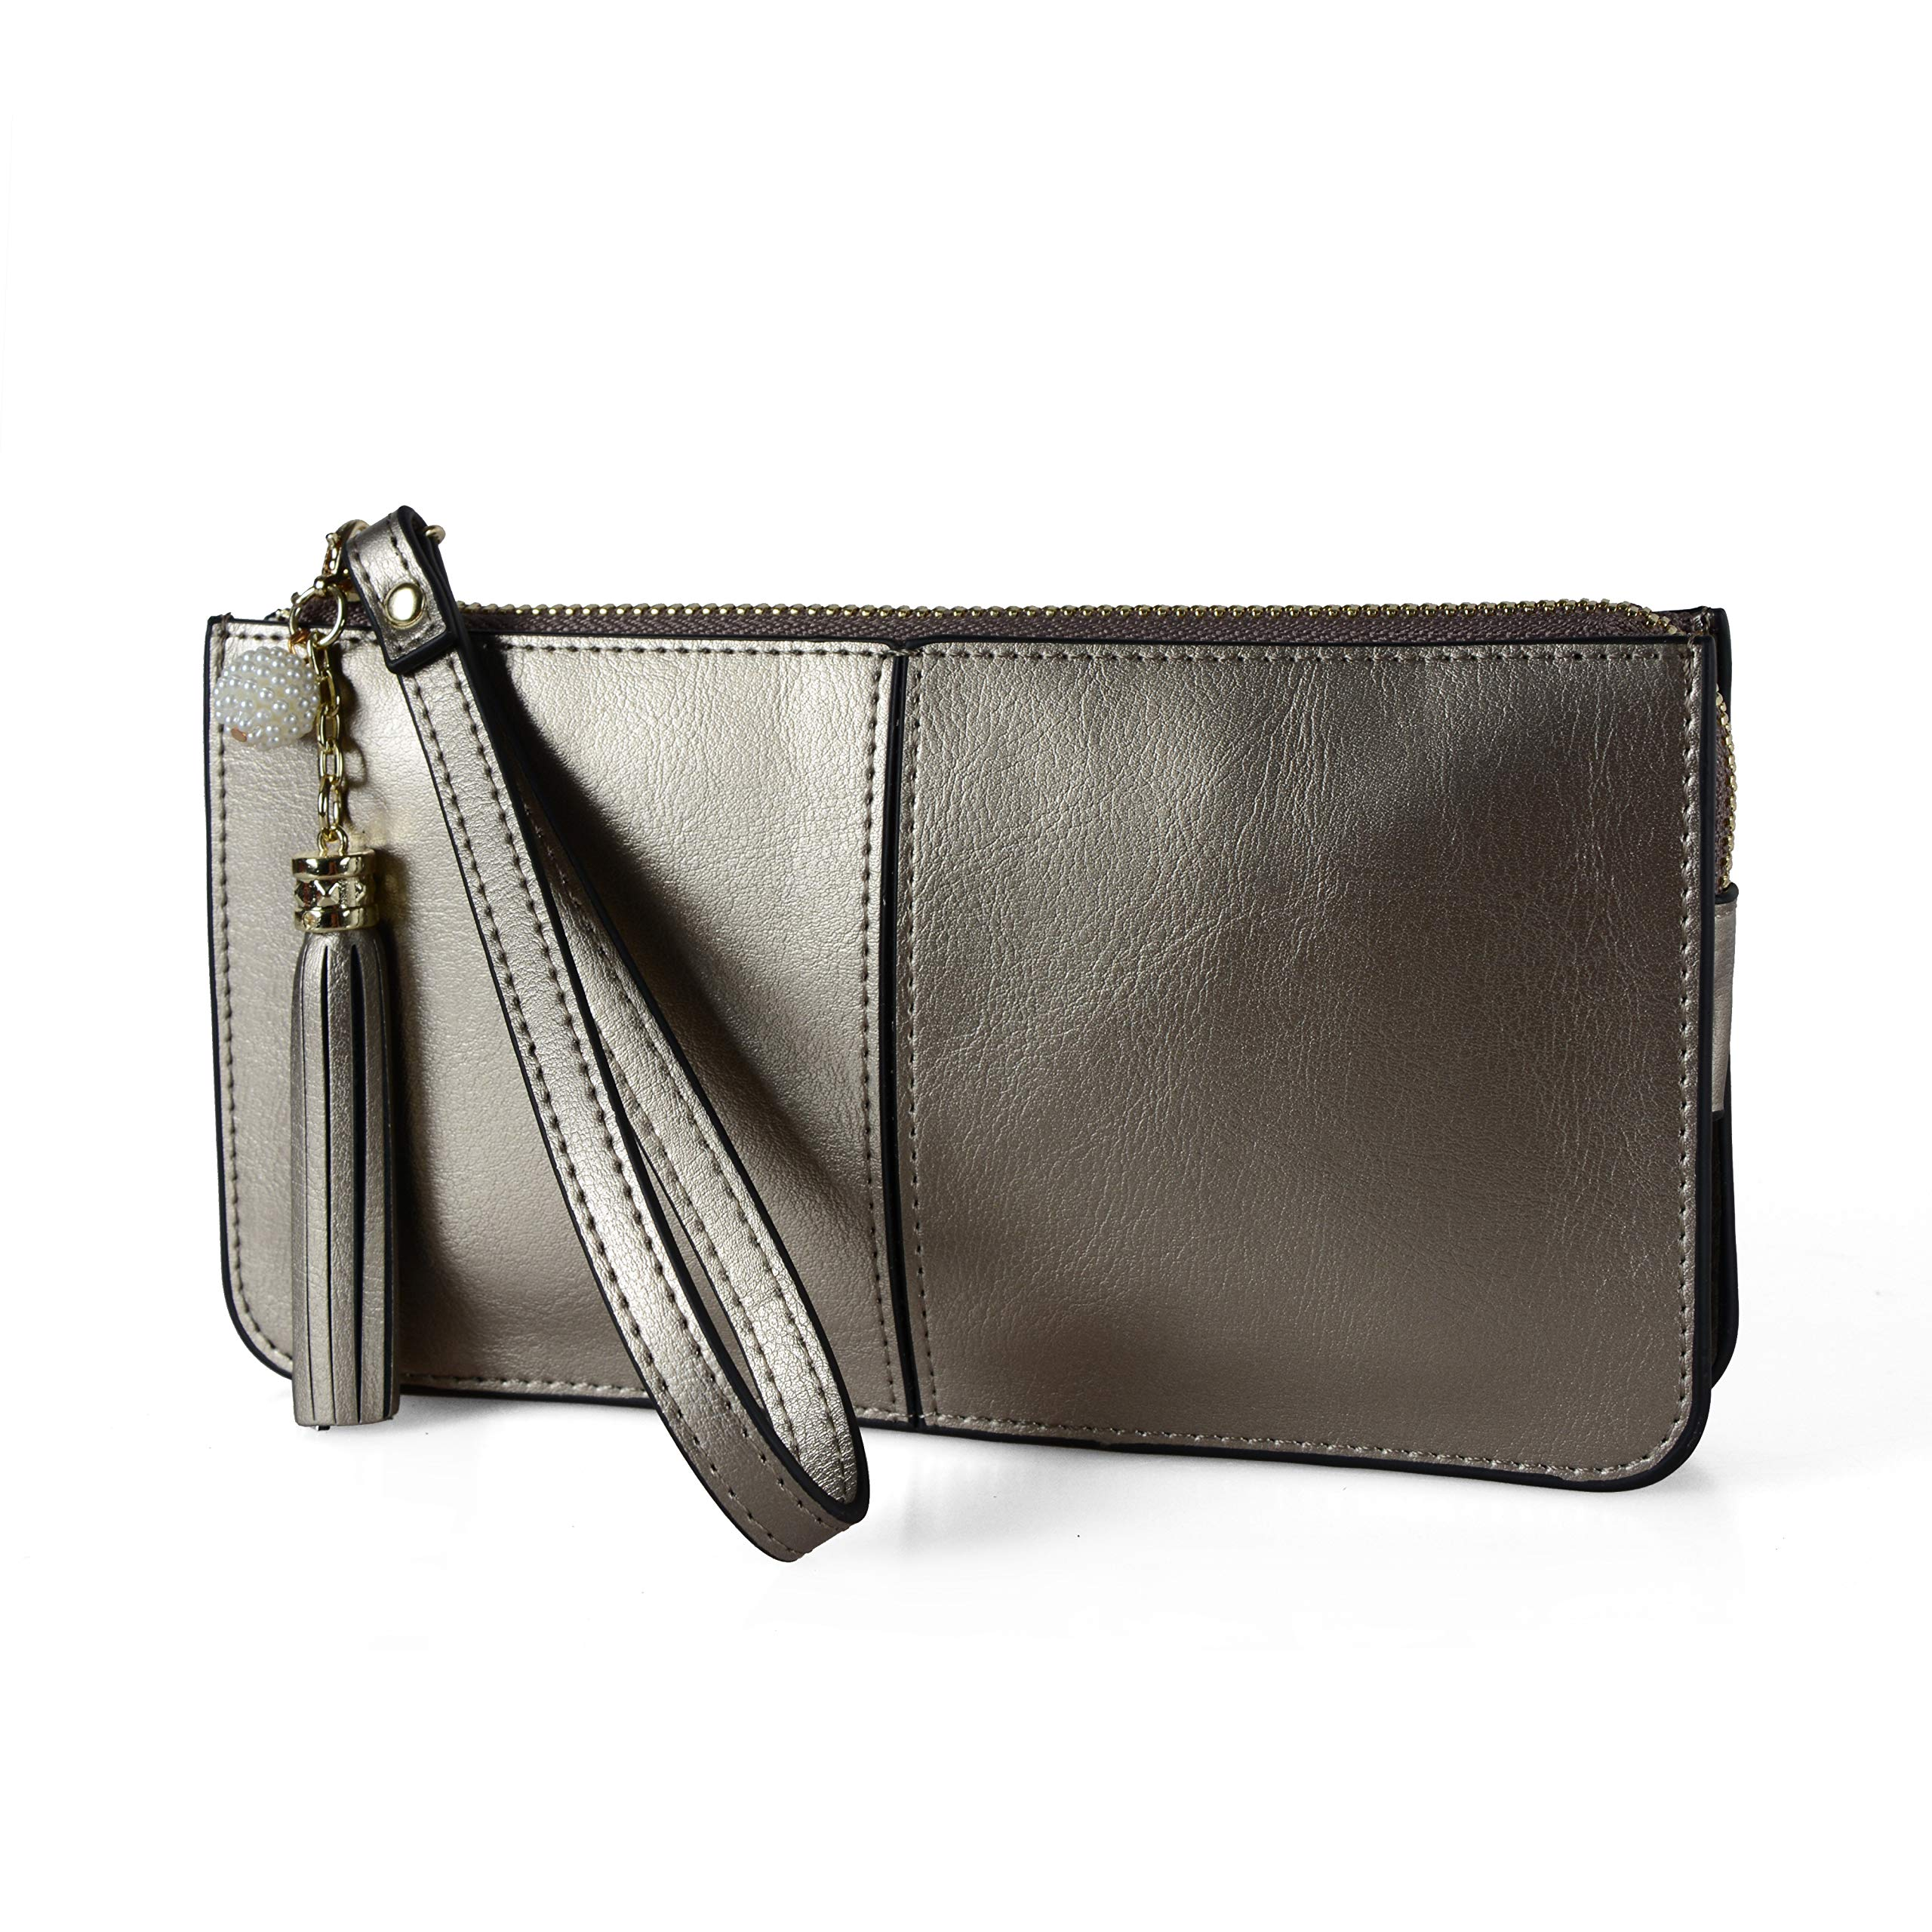 Befen Soft Leather Wristlet Phone Wristlet Wallet Clutch with Wrist Strap/Card slots/Cash pocket - Warm Silver by befen